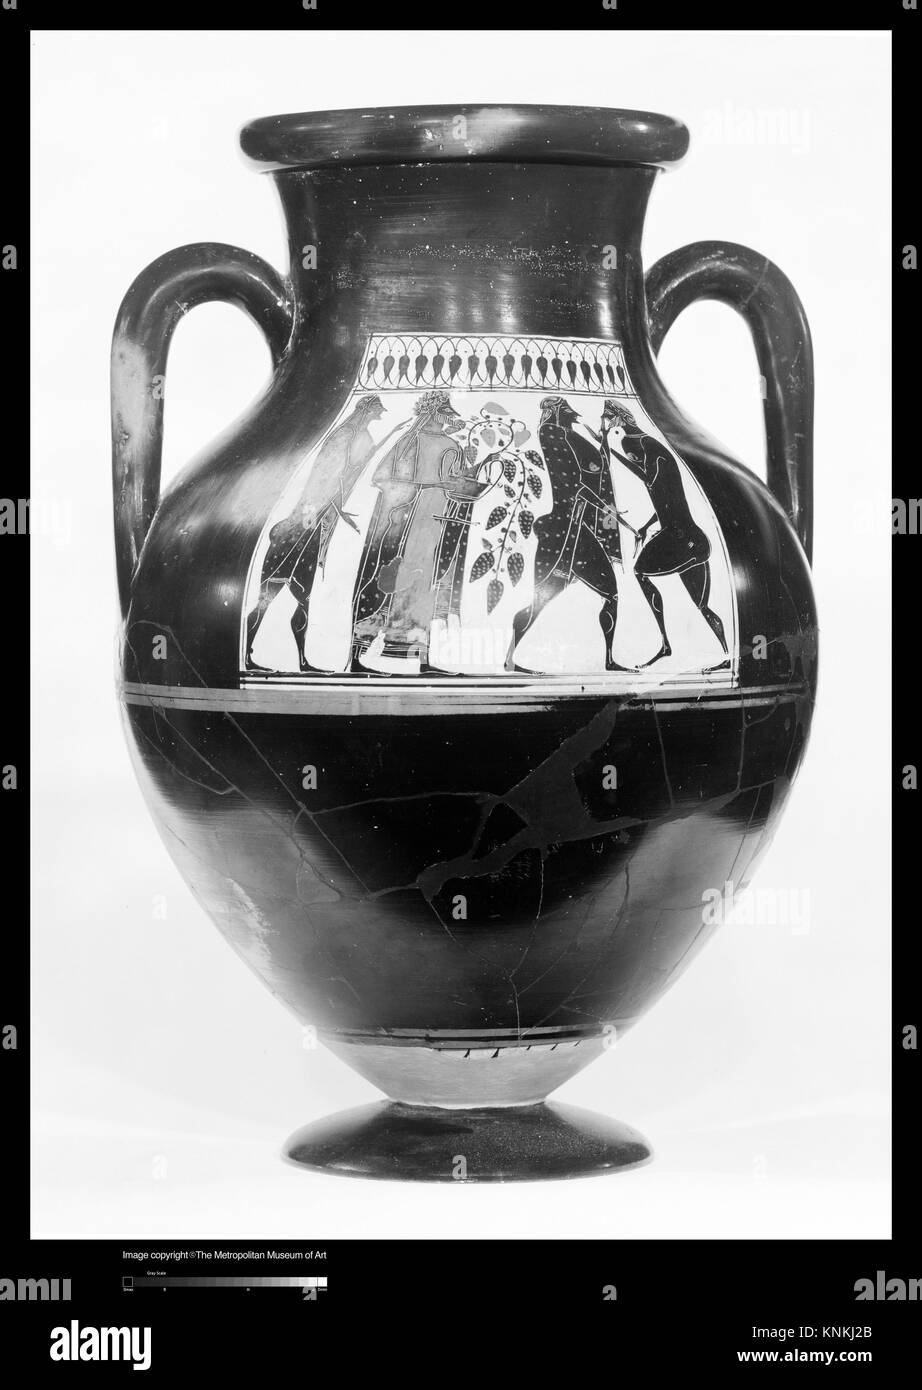 Terracotta amphora (jar). Attributed to the Affecter; Period: Archaic; Date: ca. 550-530 B.C; Culture: Greek, Attic; Stock Photo